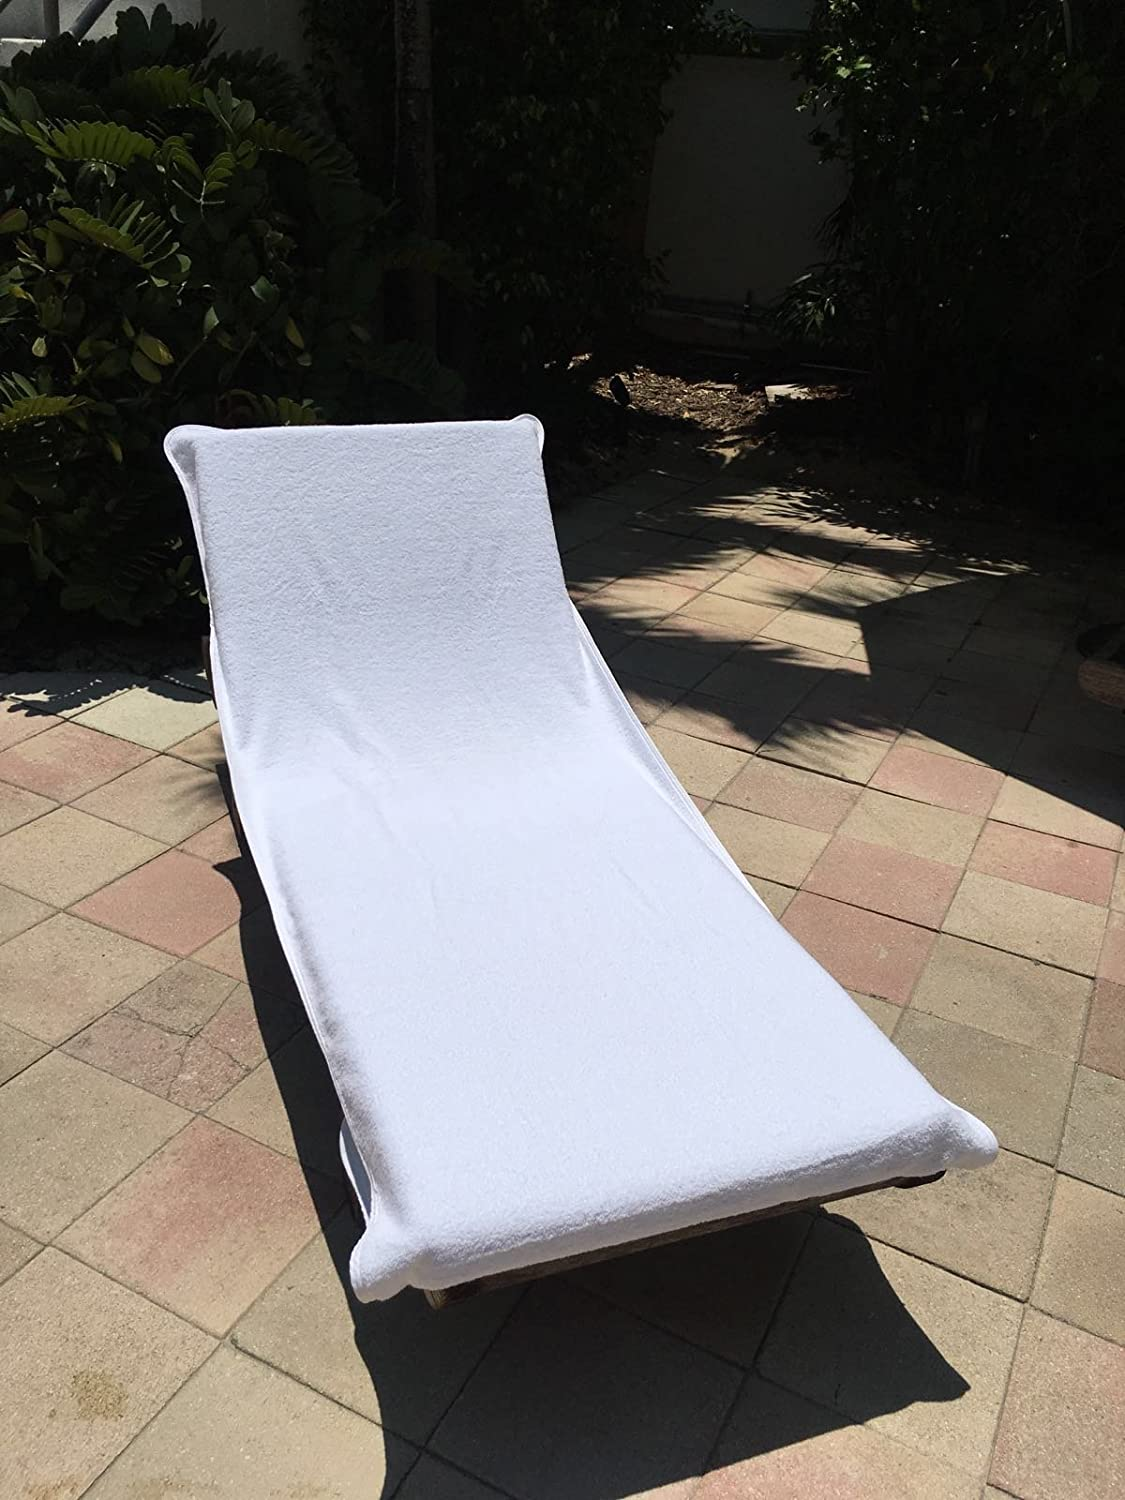 Chaise lounge chair cotton towel with flap 32 x 87 white for Chaise lounge covers cotton